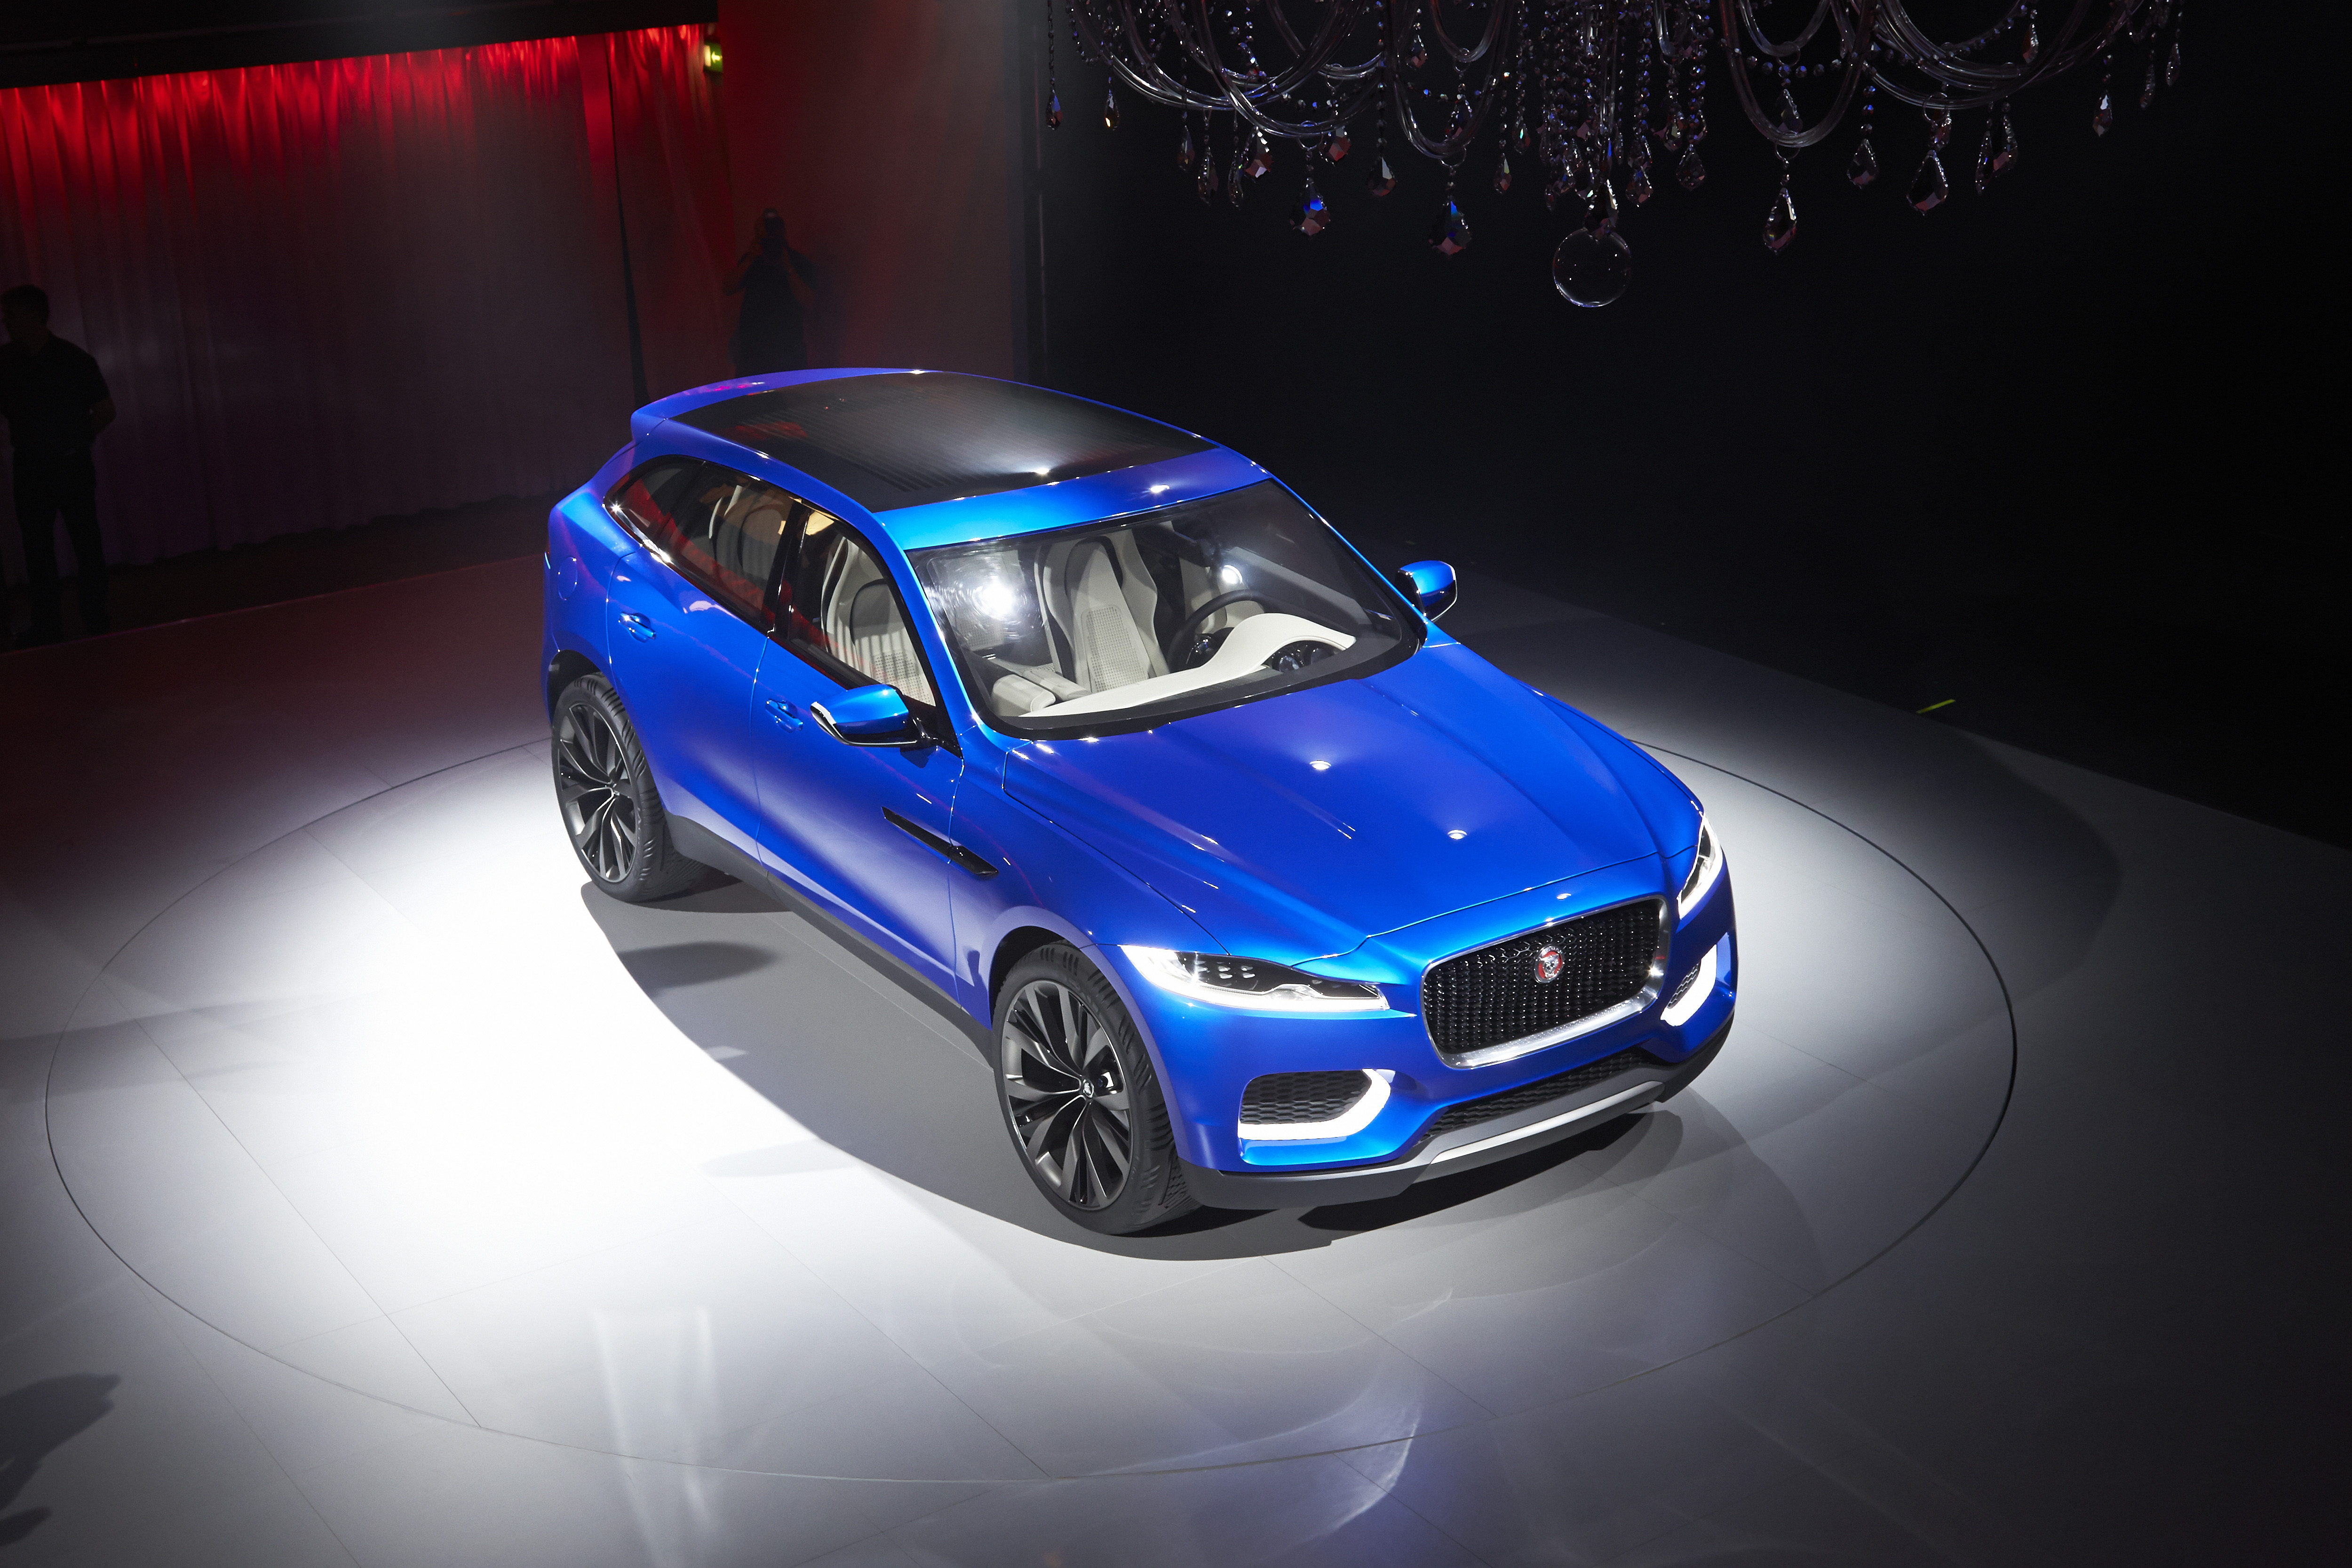 2019 Jaguar C X17 Concept photo - 2